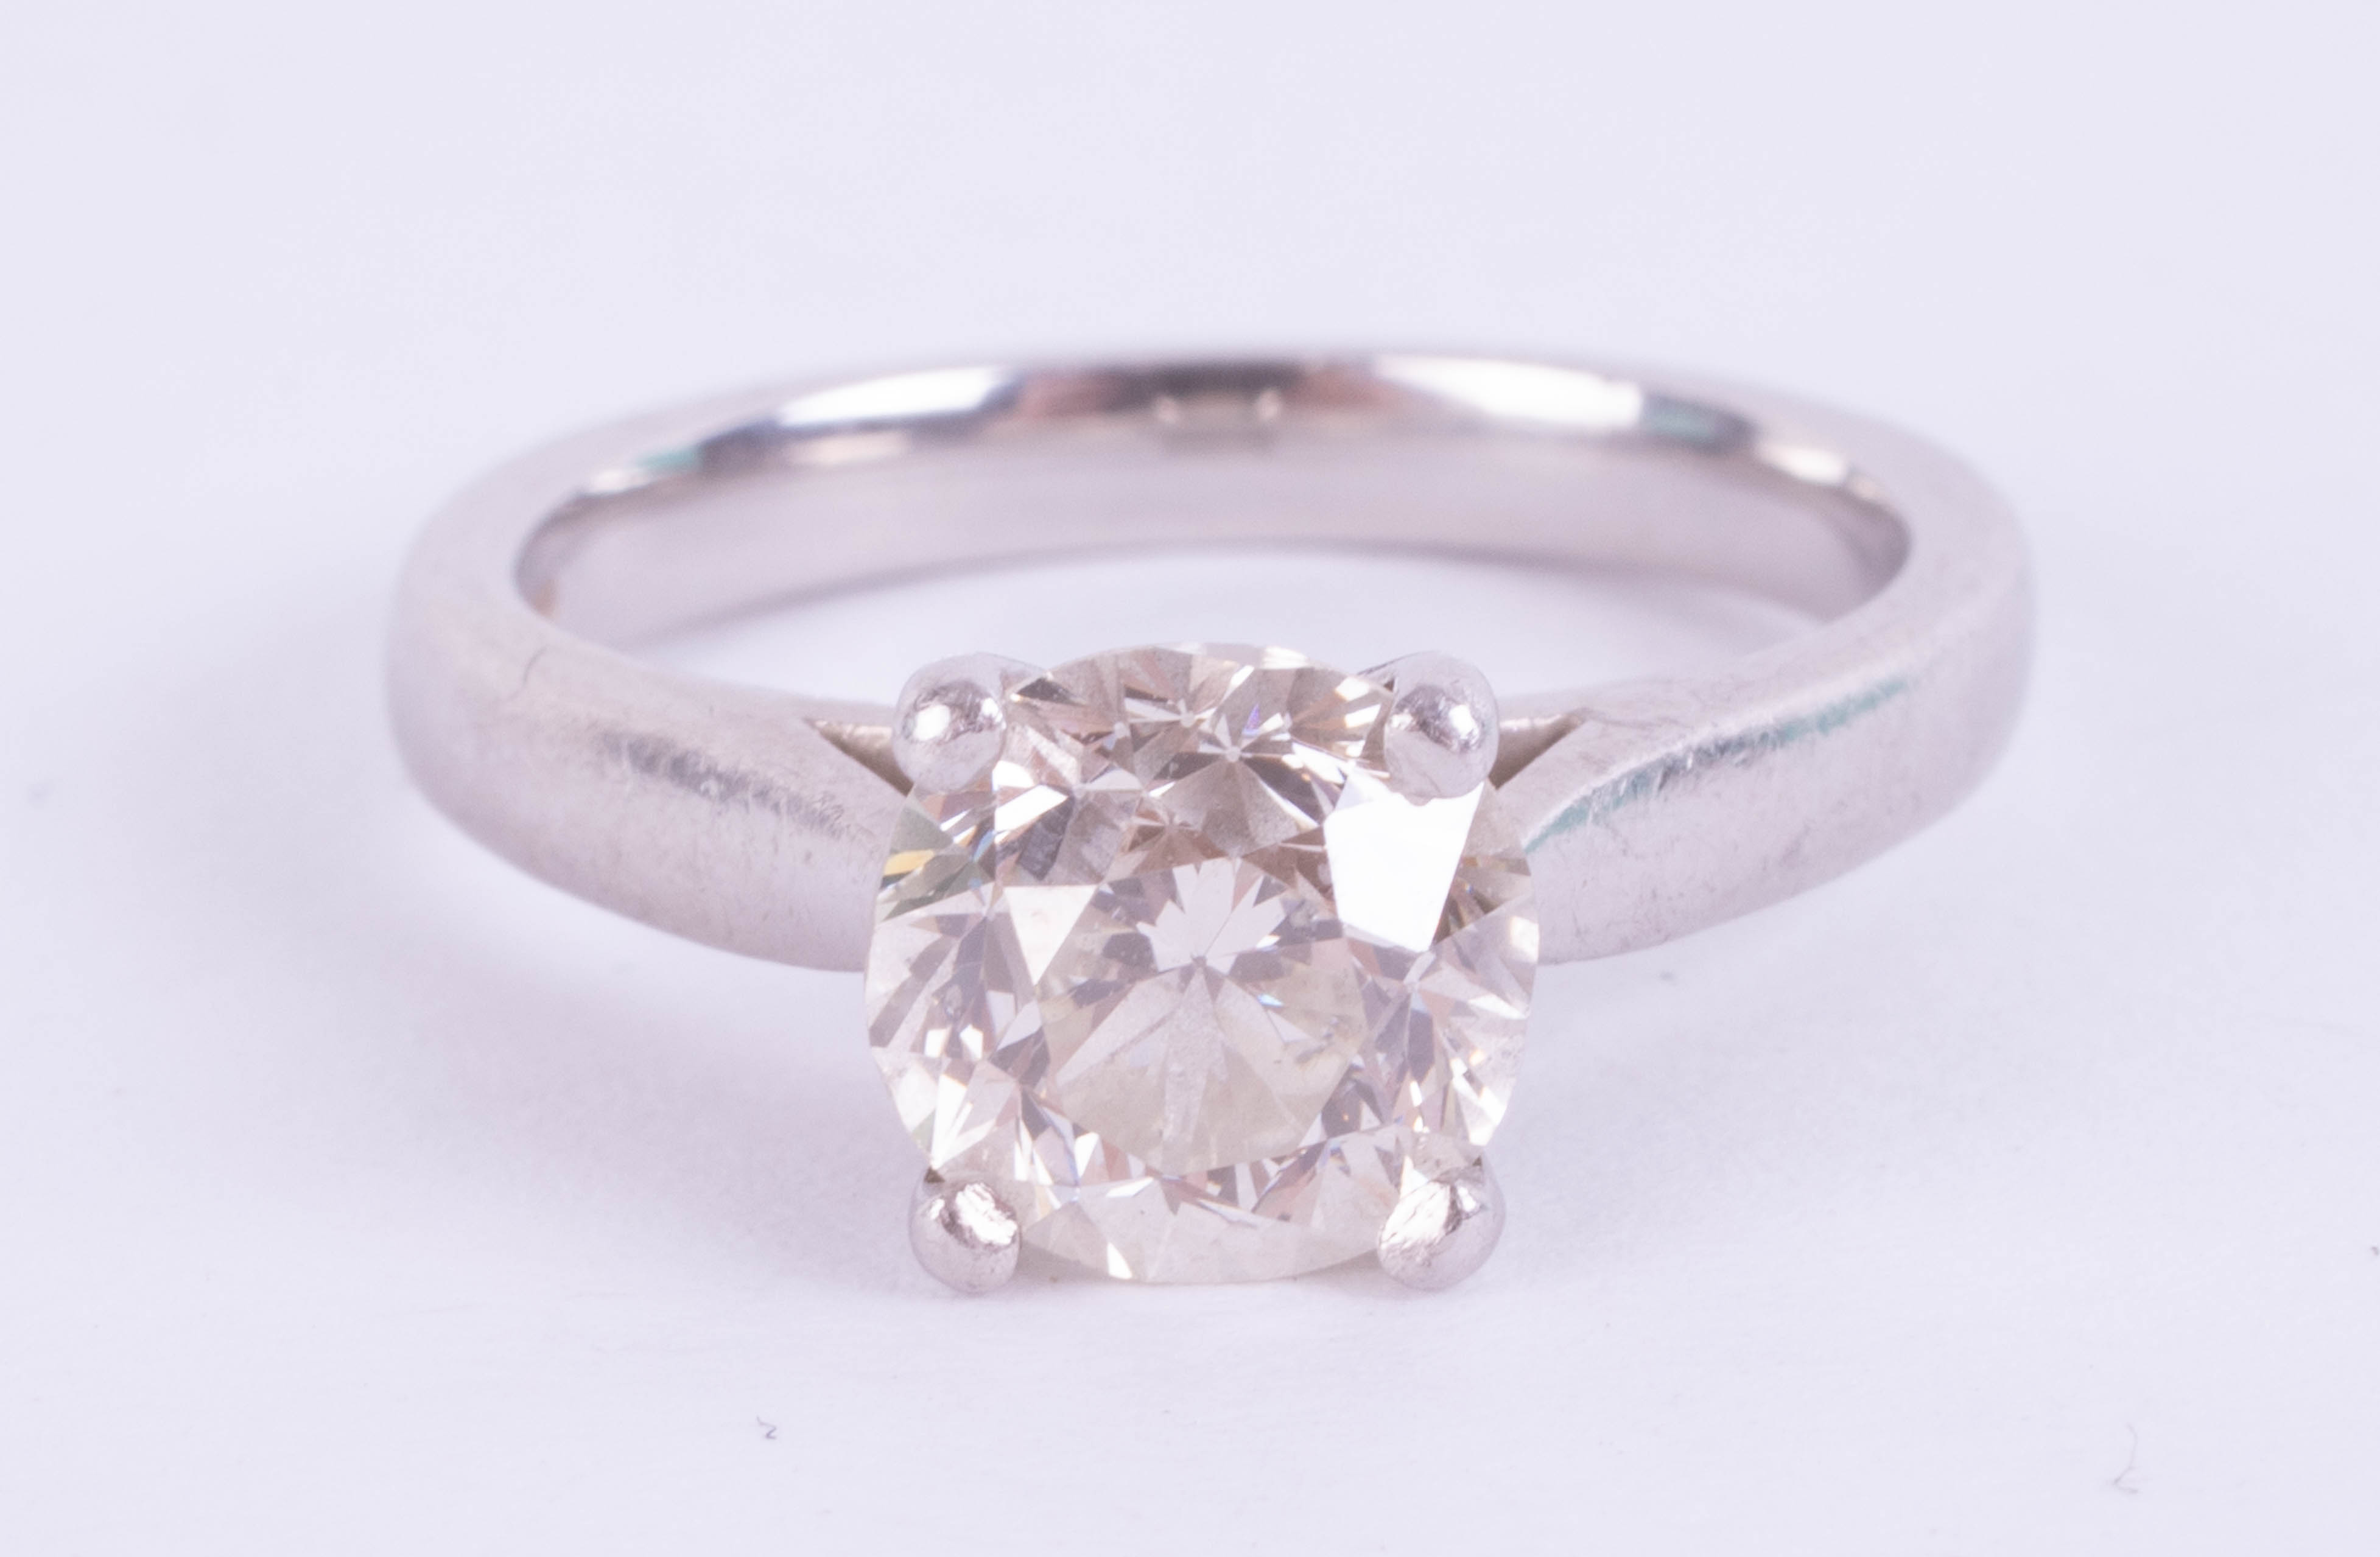 A diamond solitaire ring, approximately 1.90ct, set in platinum, size J, with copy of 2015 insurance